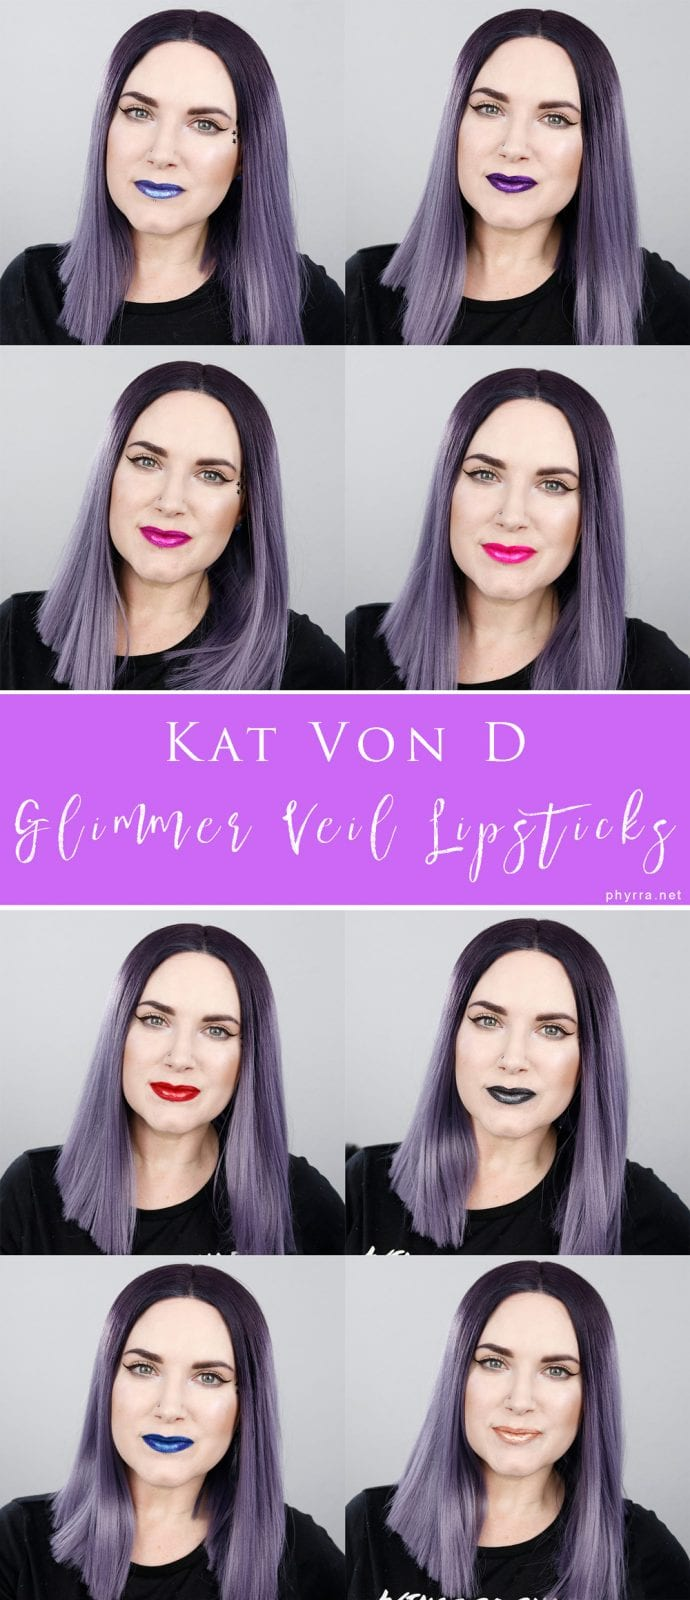 Kat Von D Everlasting Glimmer Veil Liquid Lipsticks Review, Swatches, Looks. Make any lipstick look amazing and 3d with these lip toppers! Cruelty-free and vegan!